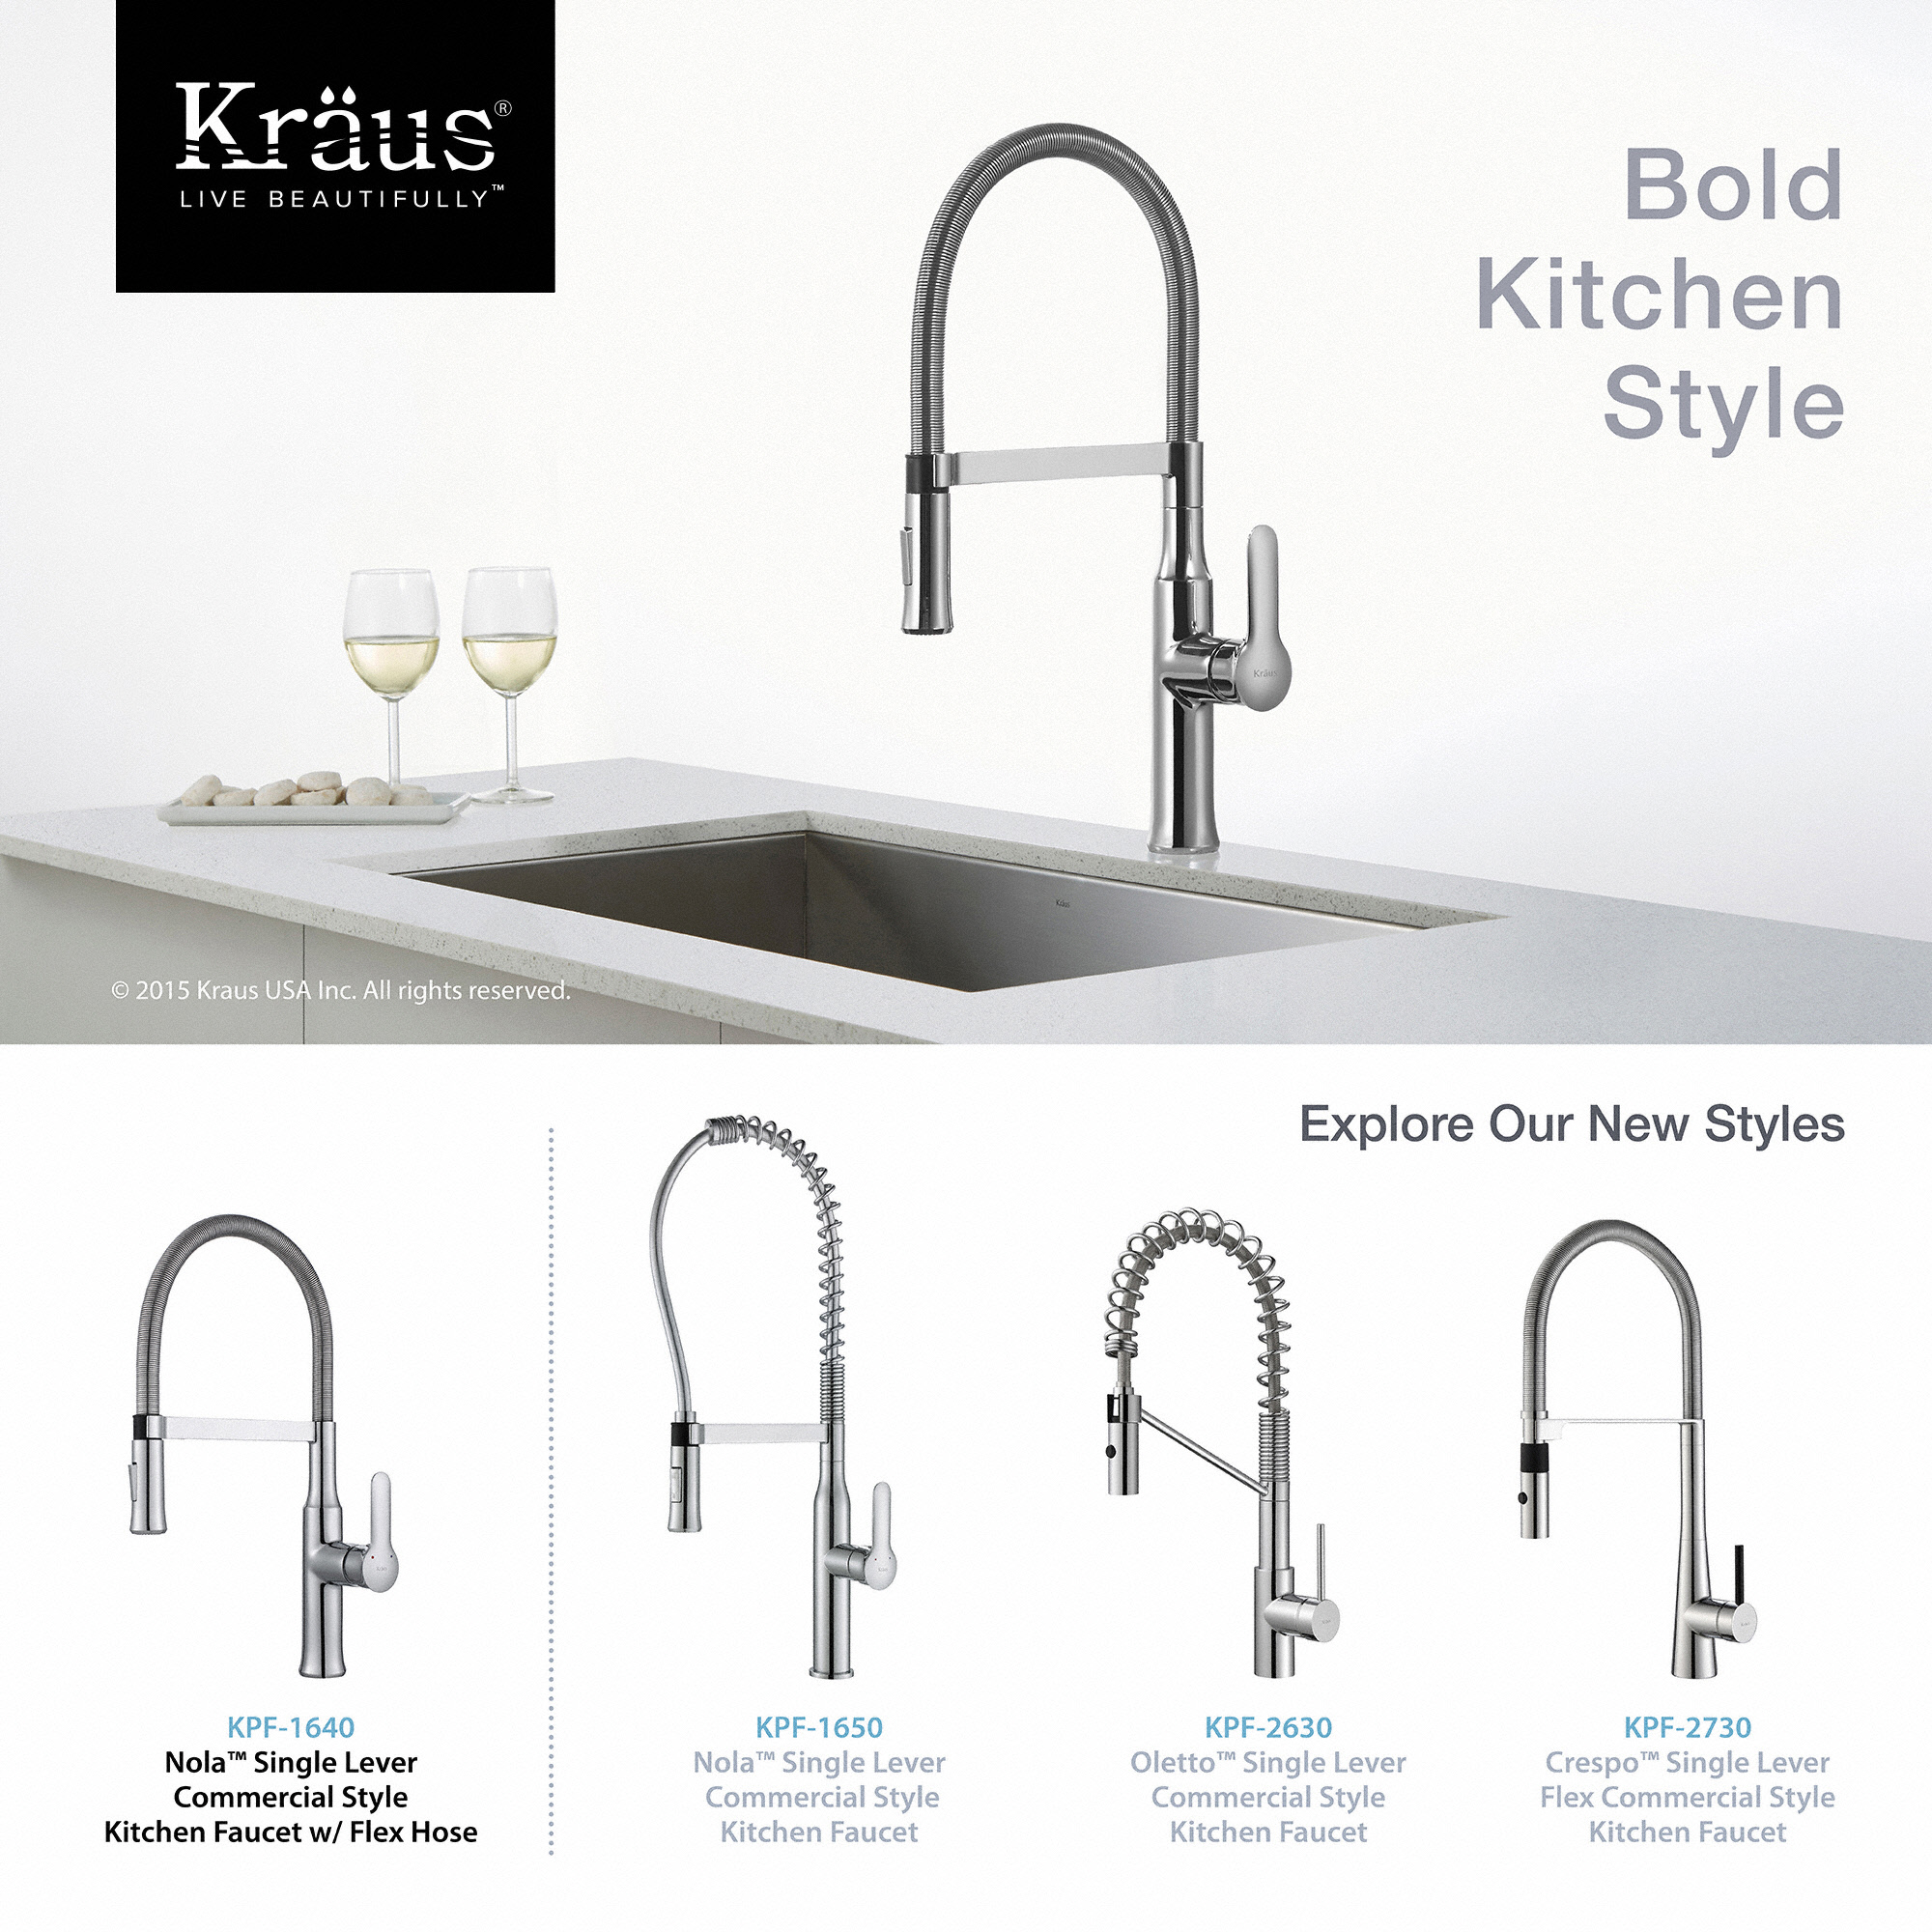 Kraus Nola Flex Single Handle Commercial Style Kitchen Faucet With Dual Function Sprayer In Chrome